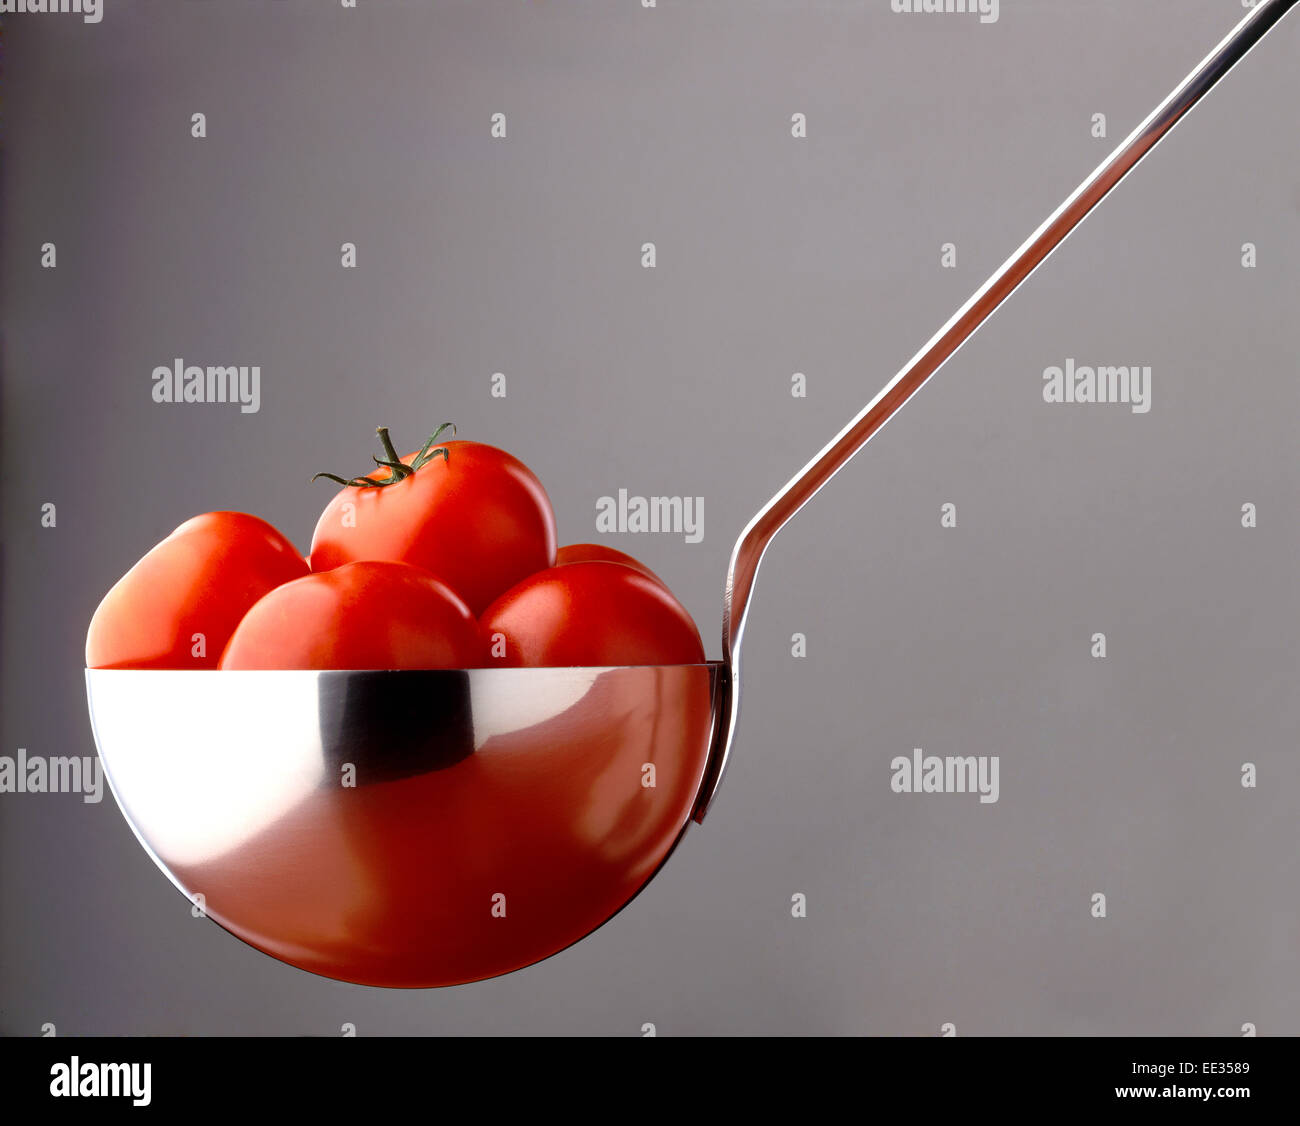 tomato soup ingredients in large ladle - Stock Image